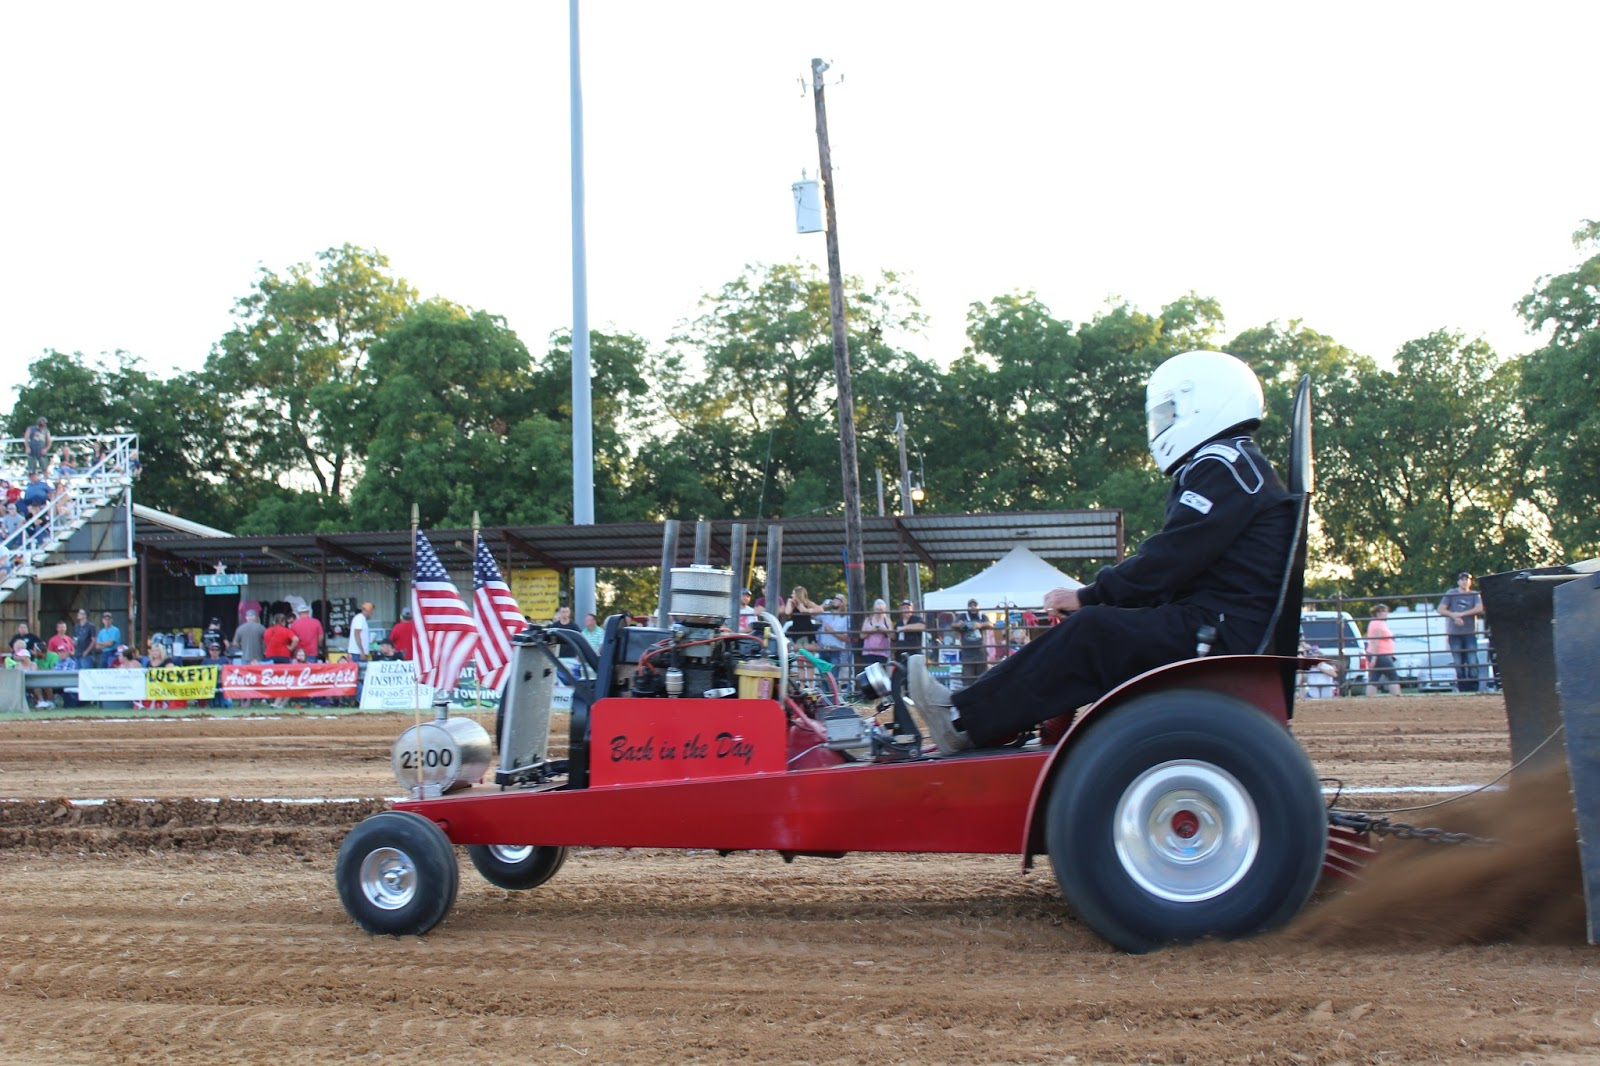 Tractor Pull Tractors : Lsgtpa tractor pulling lindsay truck pull